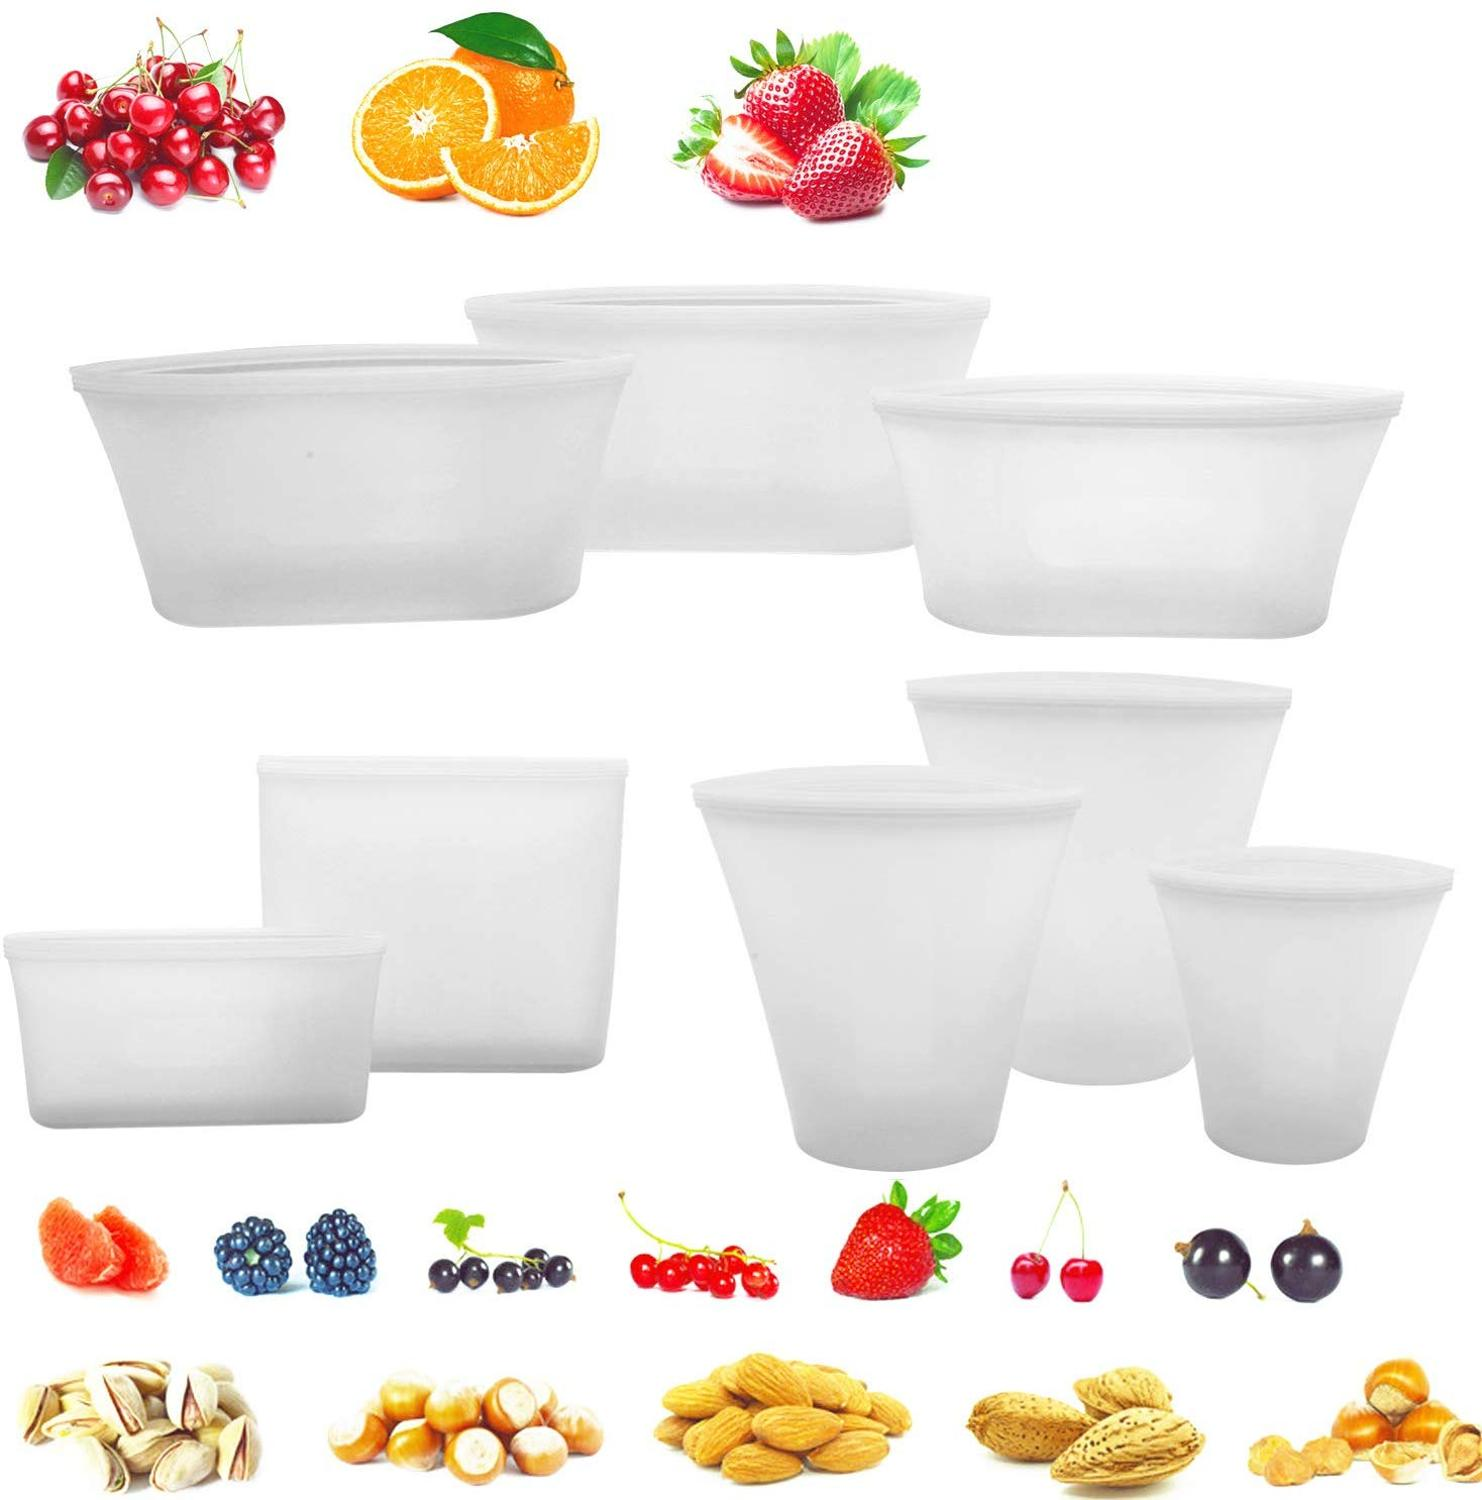 Reusable Kitchen Storage Bag Silicone Leakproof Containers Set Original Silicone Food Storage Bowls Cups Bags Set With Seal